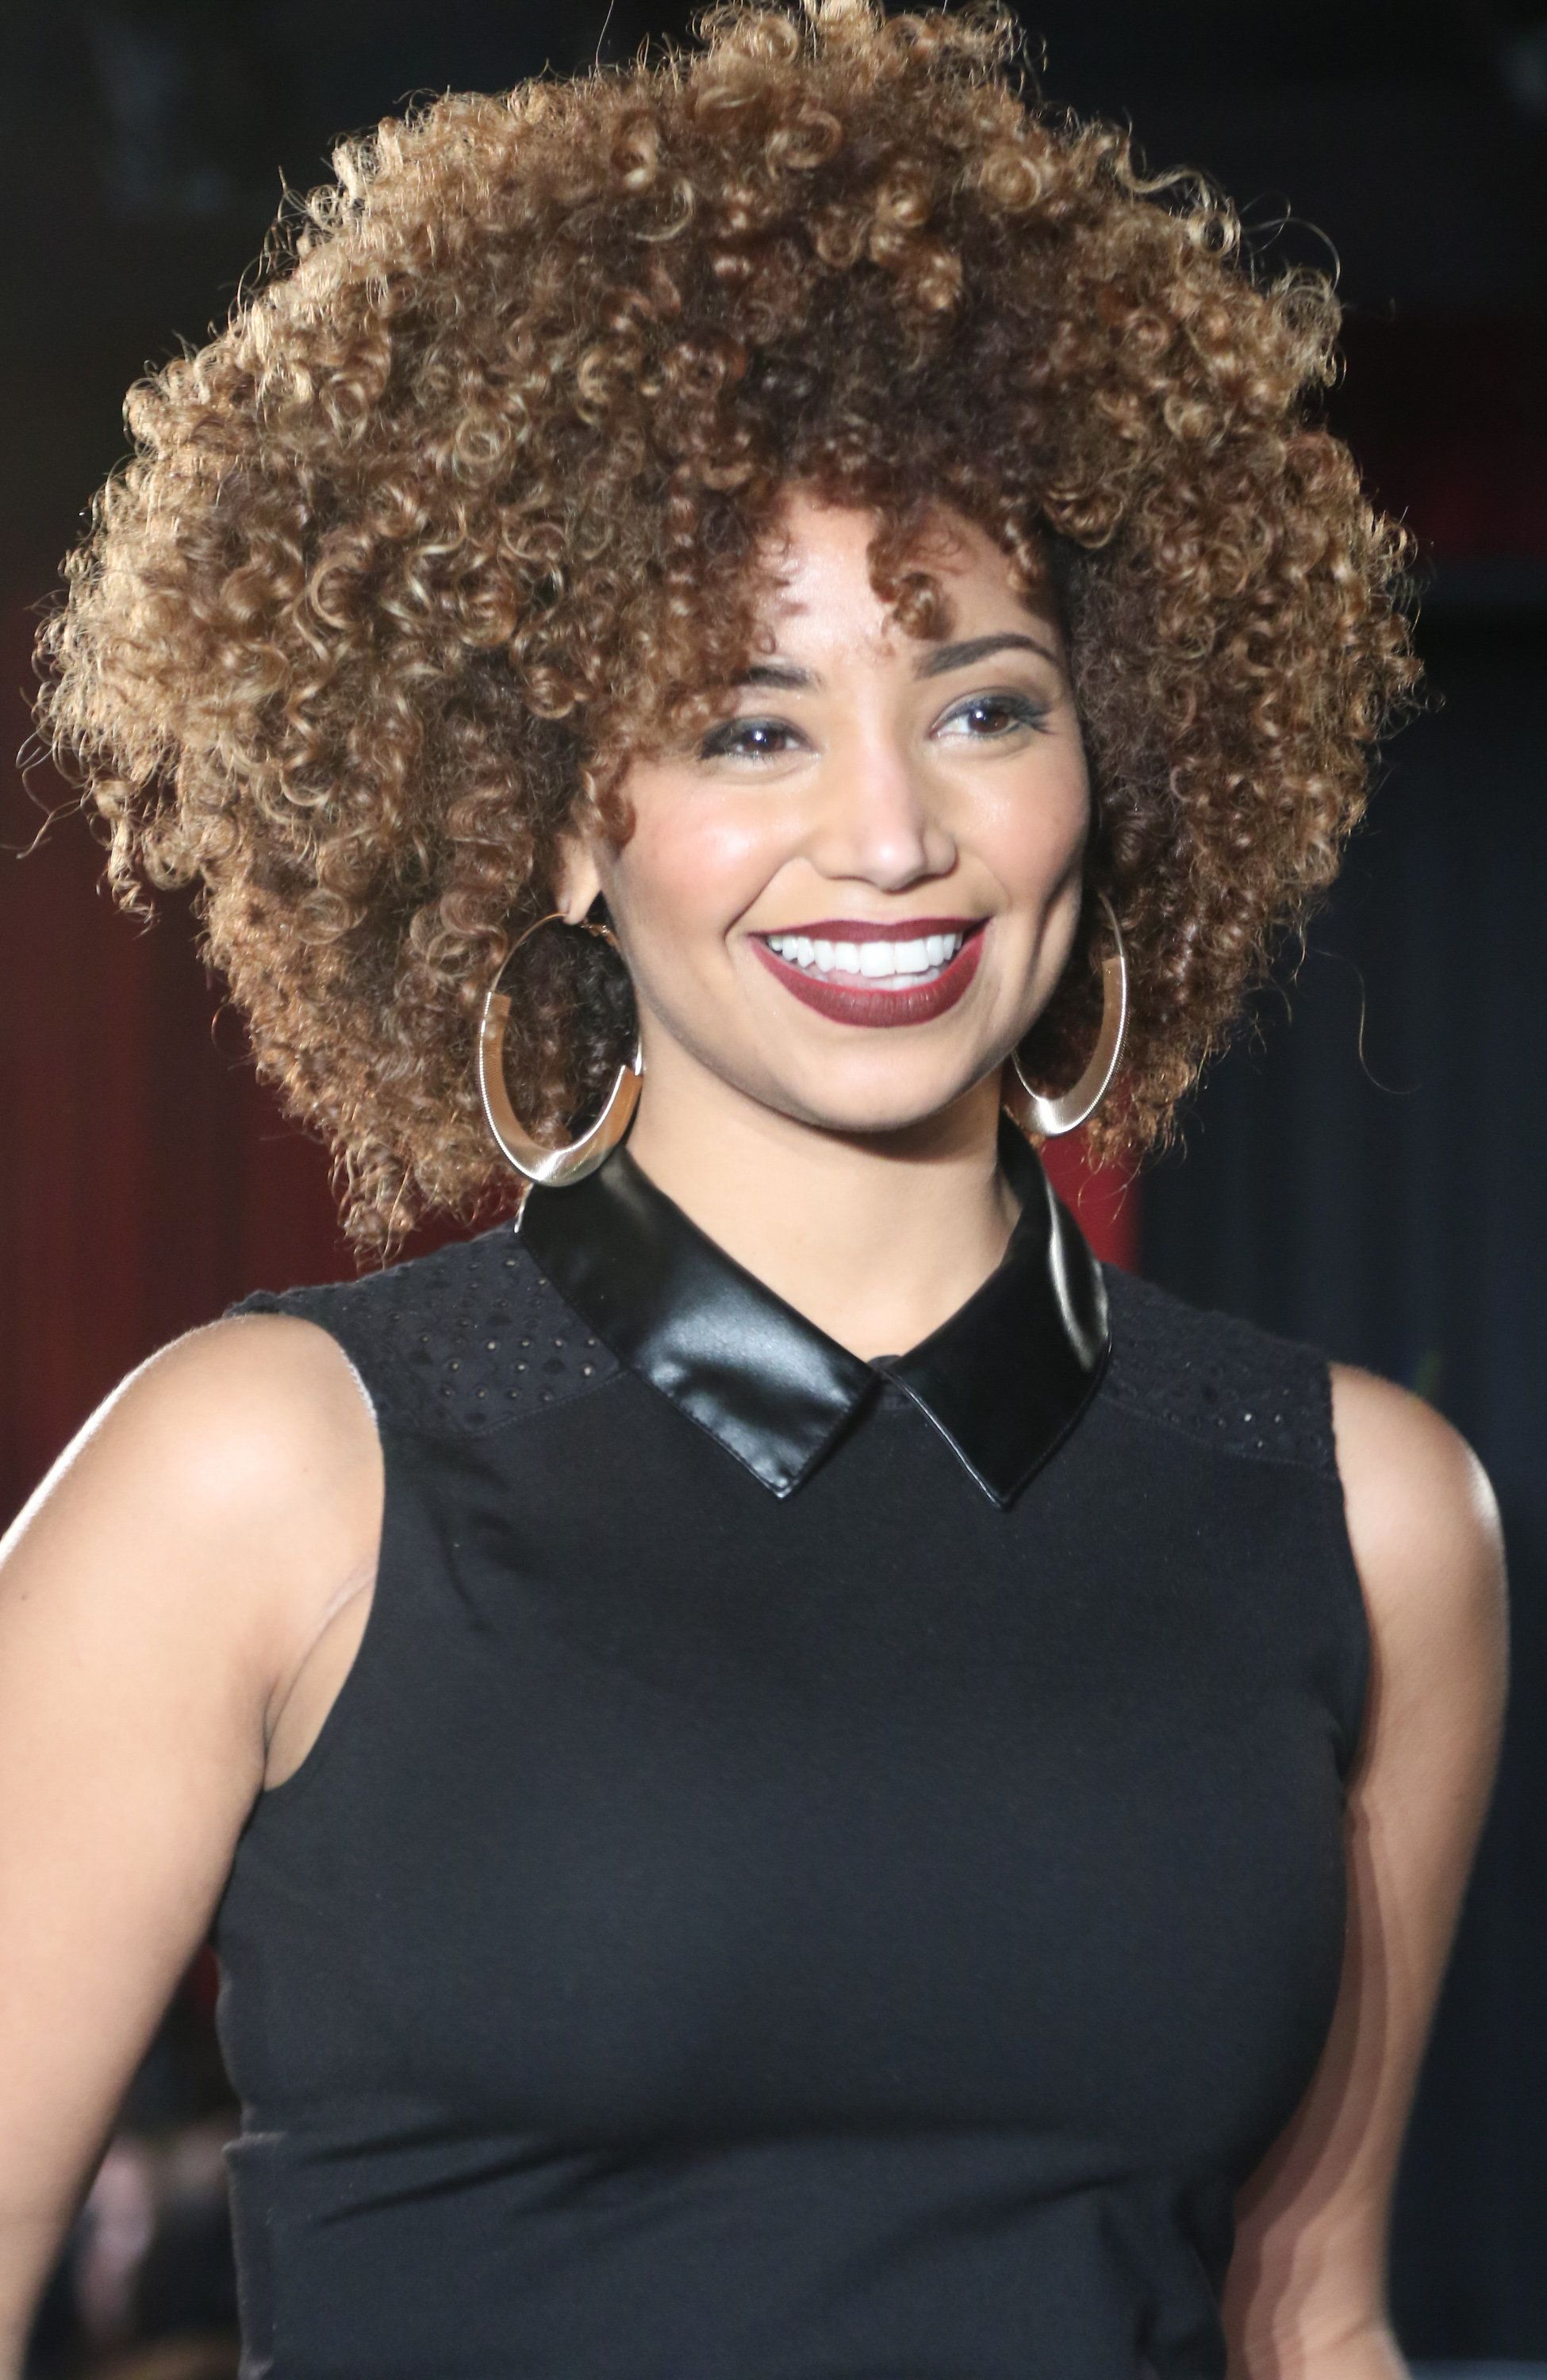 Individuals with rounder faces should keep their curly bangs above the brows.